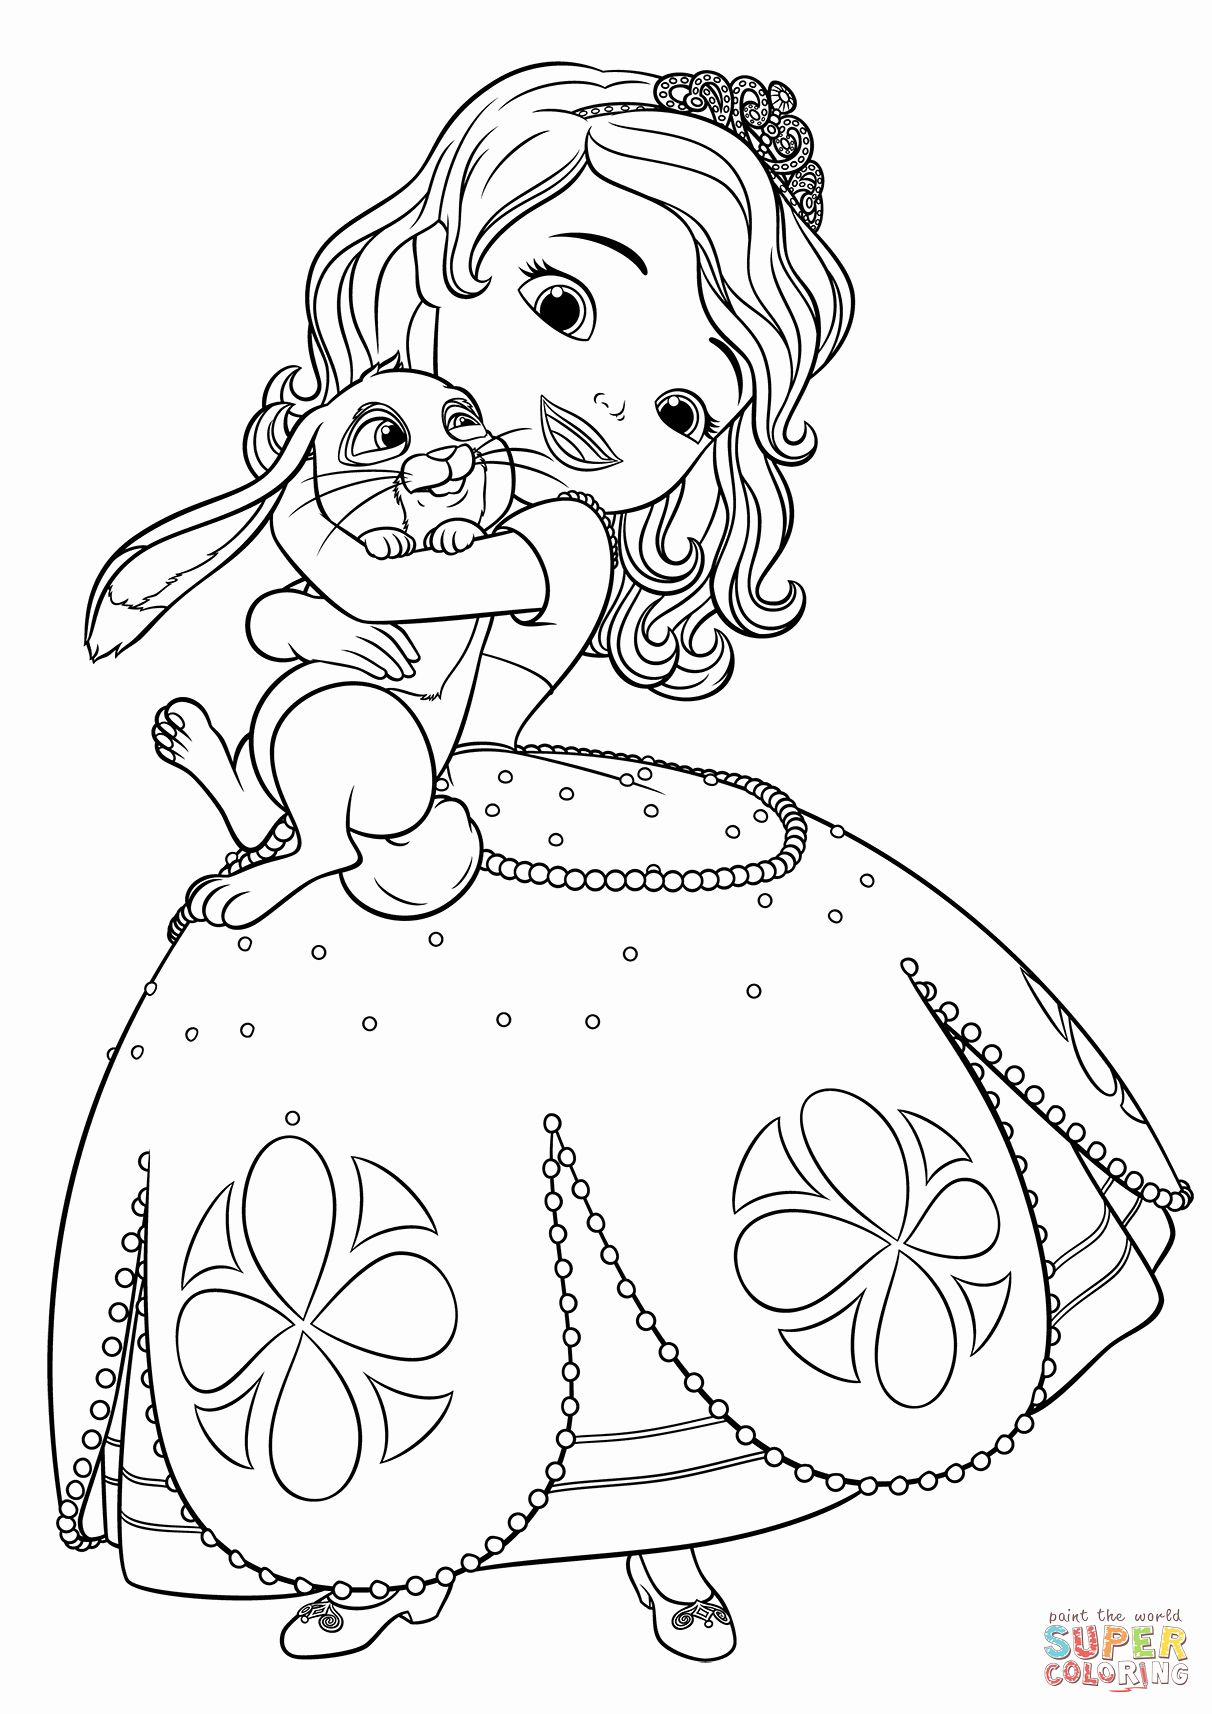 sofia the princess coloring pages clover the rabbit from sofia the first coloring page pages sofia coloring the princess